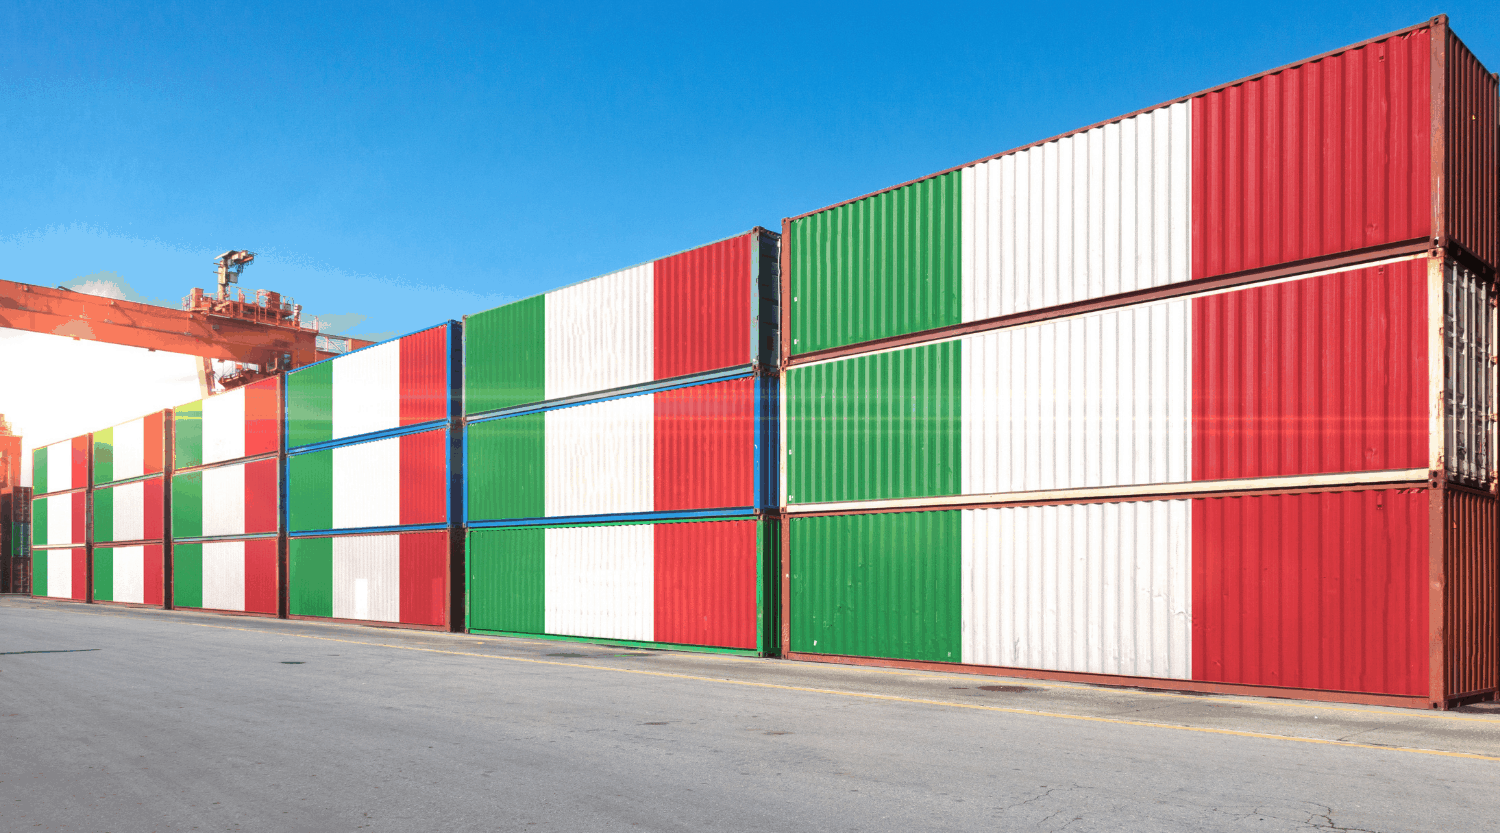 shipping containers on italian flag